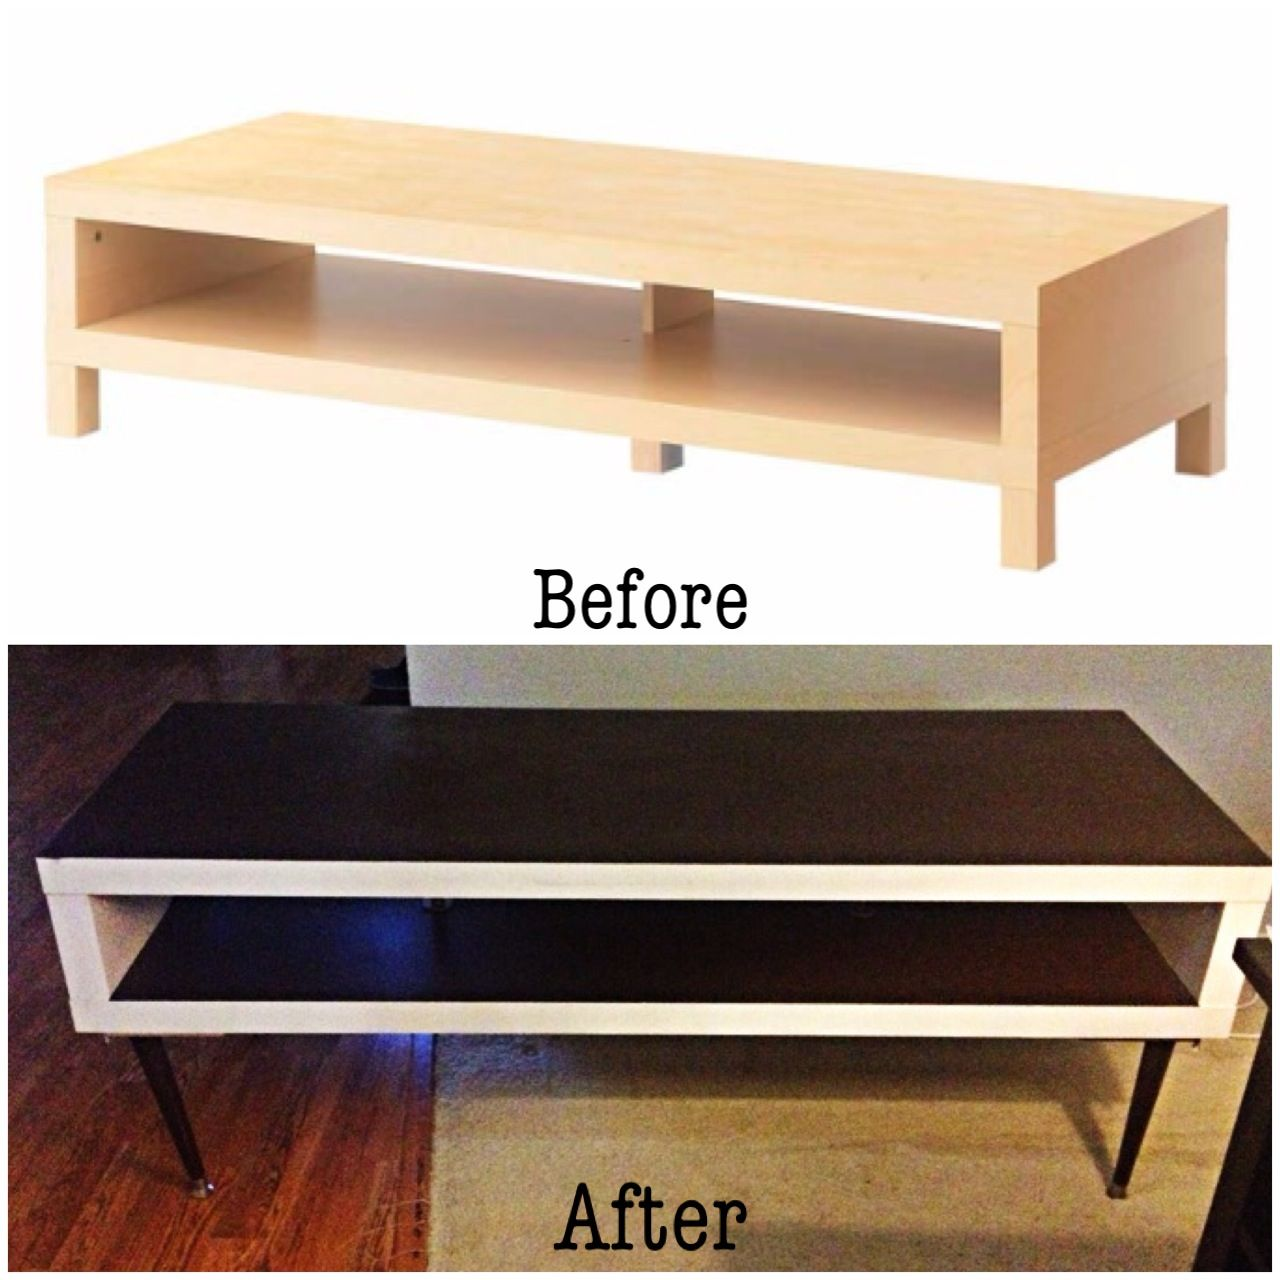 Ikea Diy Diy Ikea Hack Lack Tv Stand To Mid Century Inspired